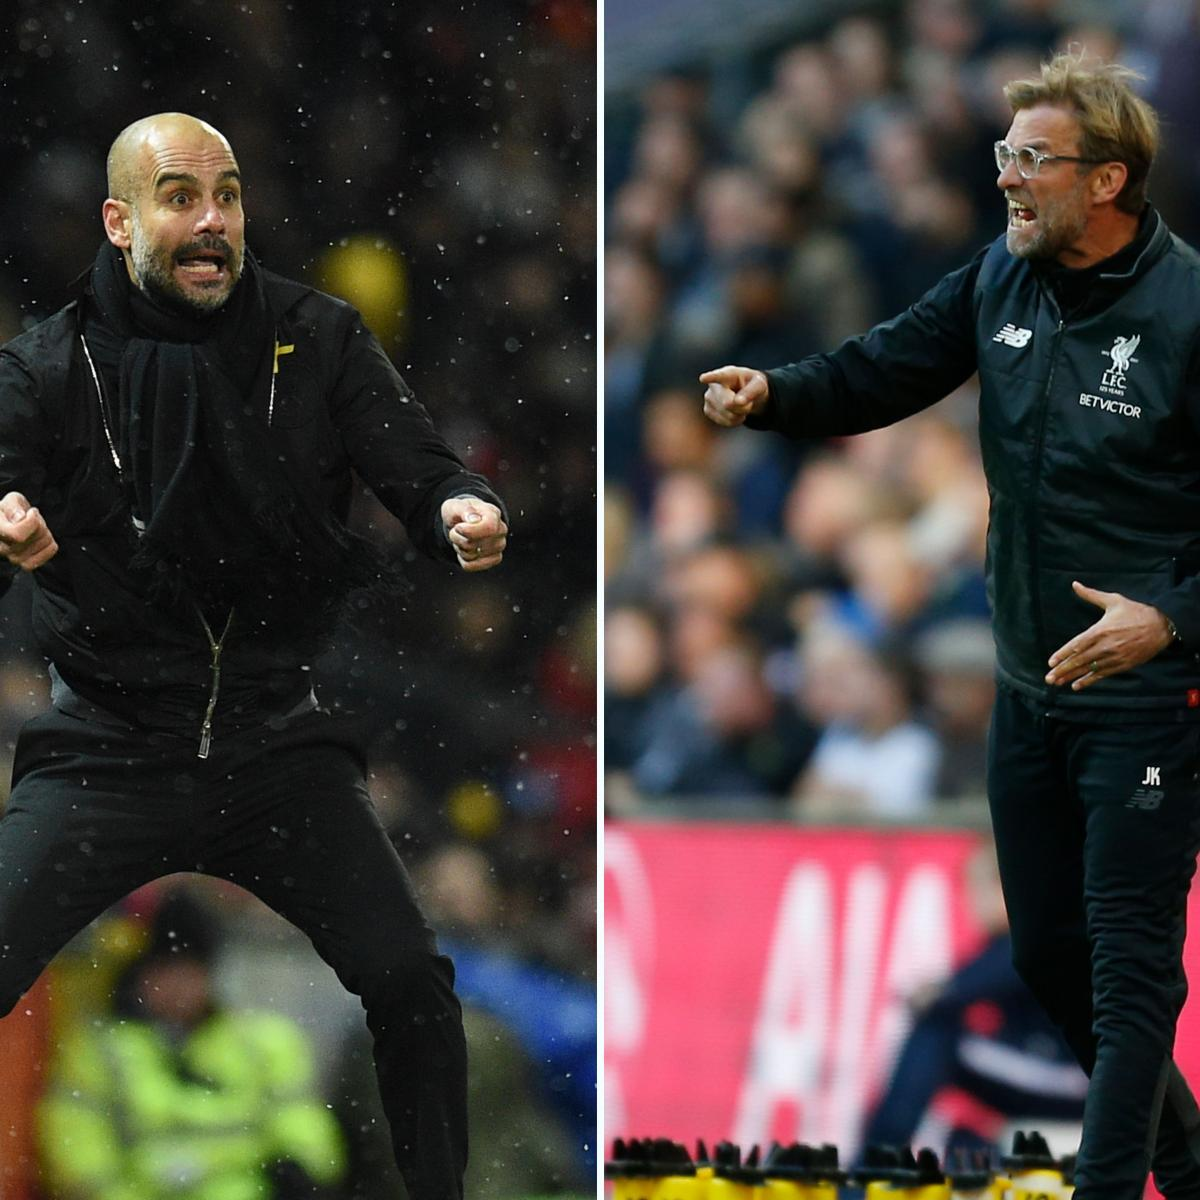 Live Streaming Soccer News Liverpool Vs Benfica Live: Manchester City Vs. Liverpool: 2018 ICC Time, TV Schedule